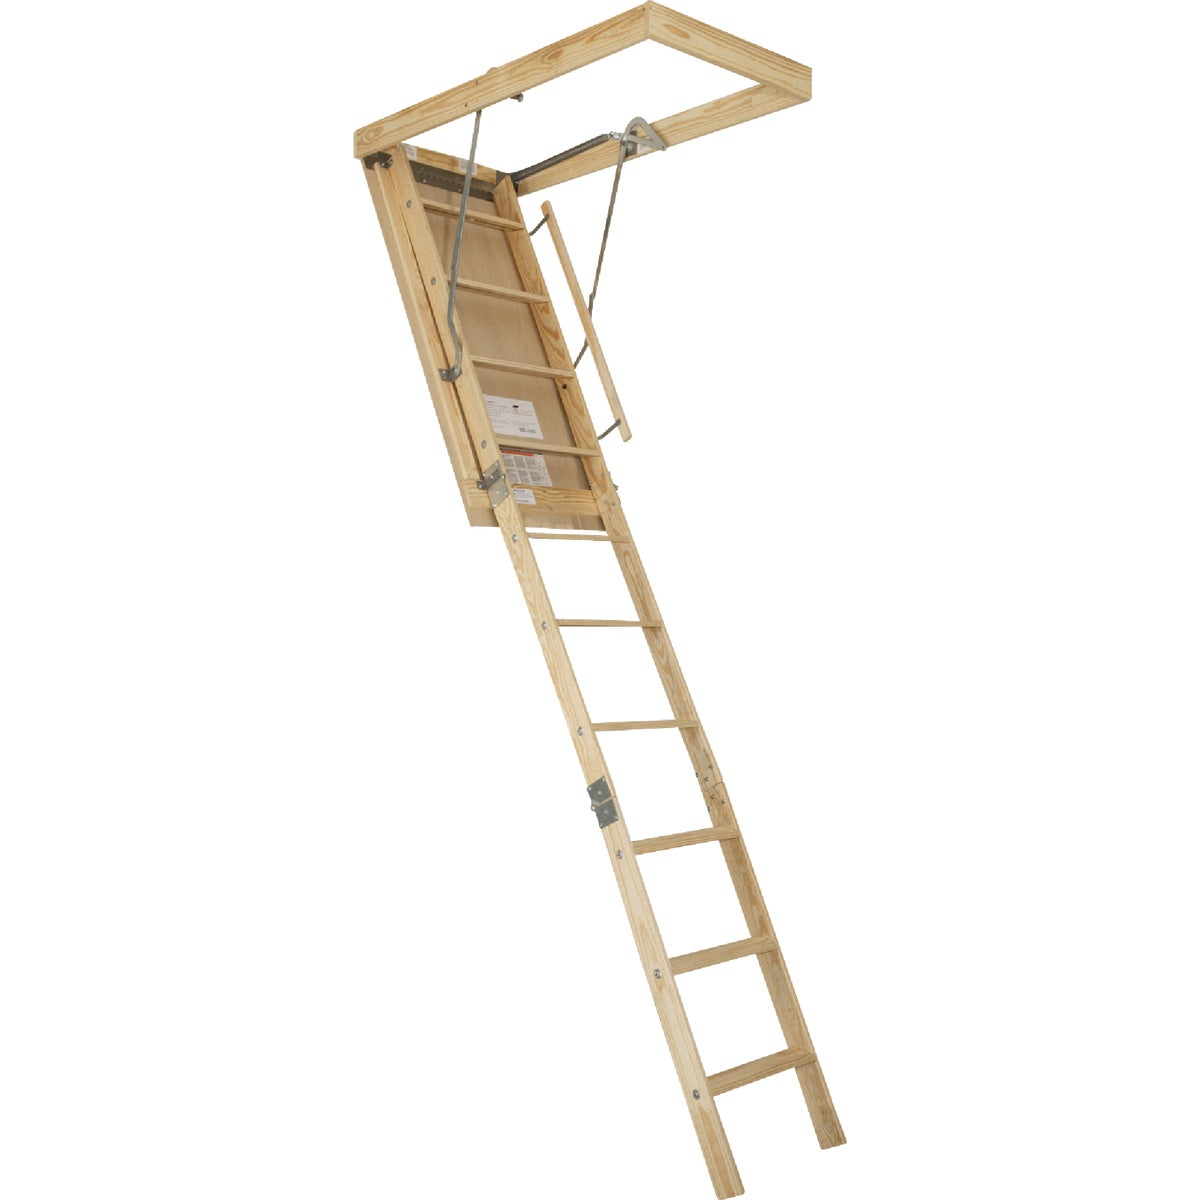 22X105 FIRE ATTIC STAIR